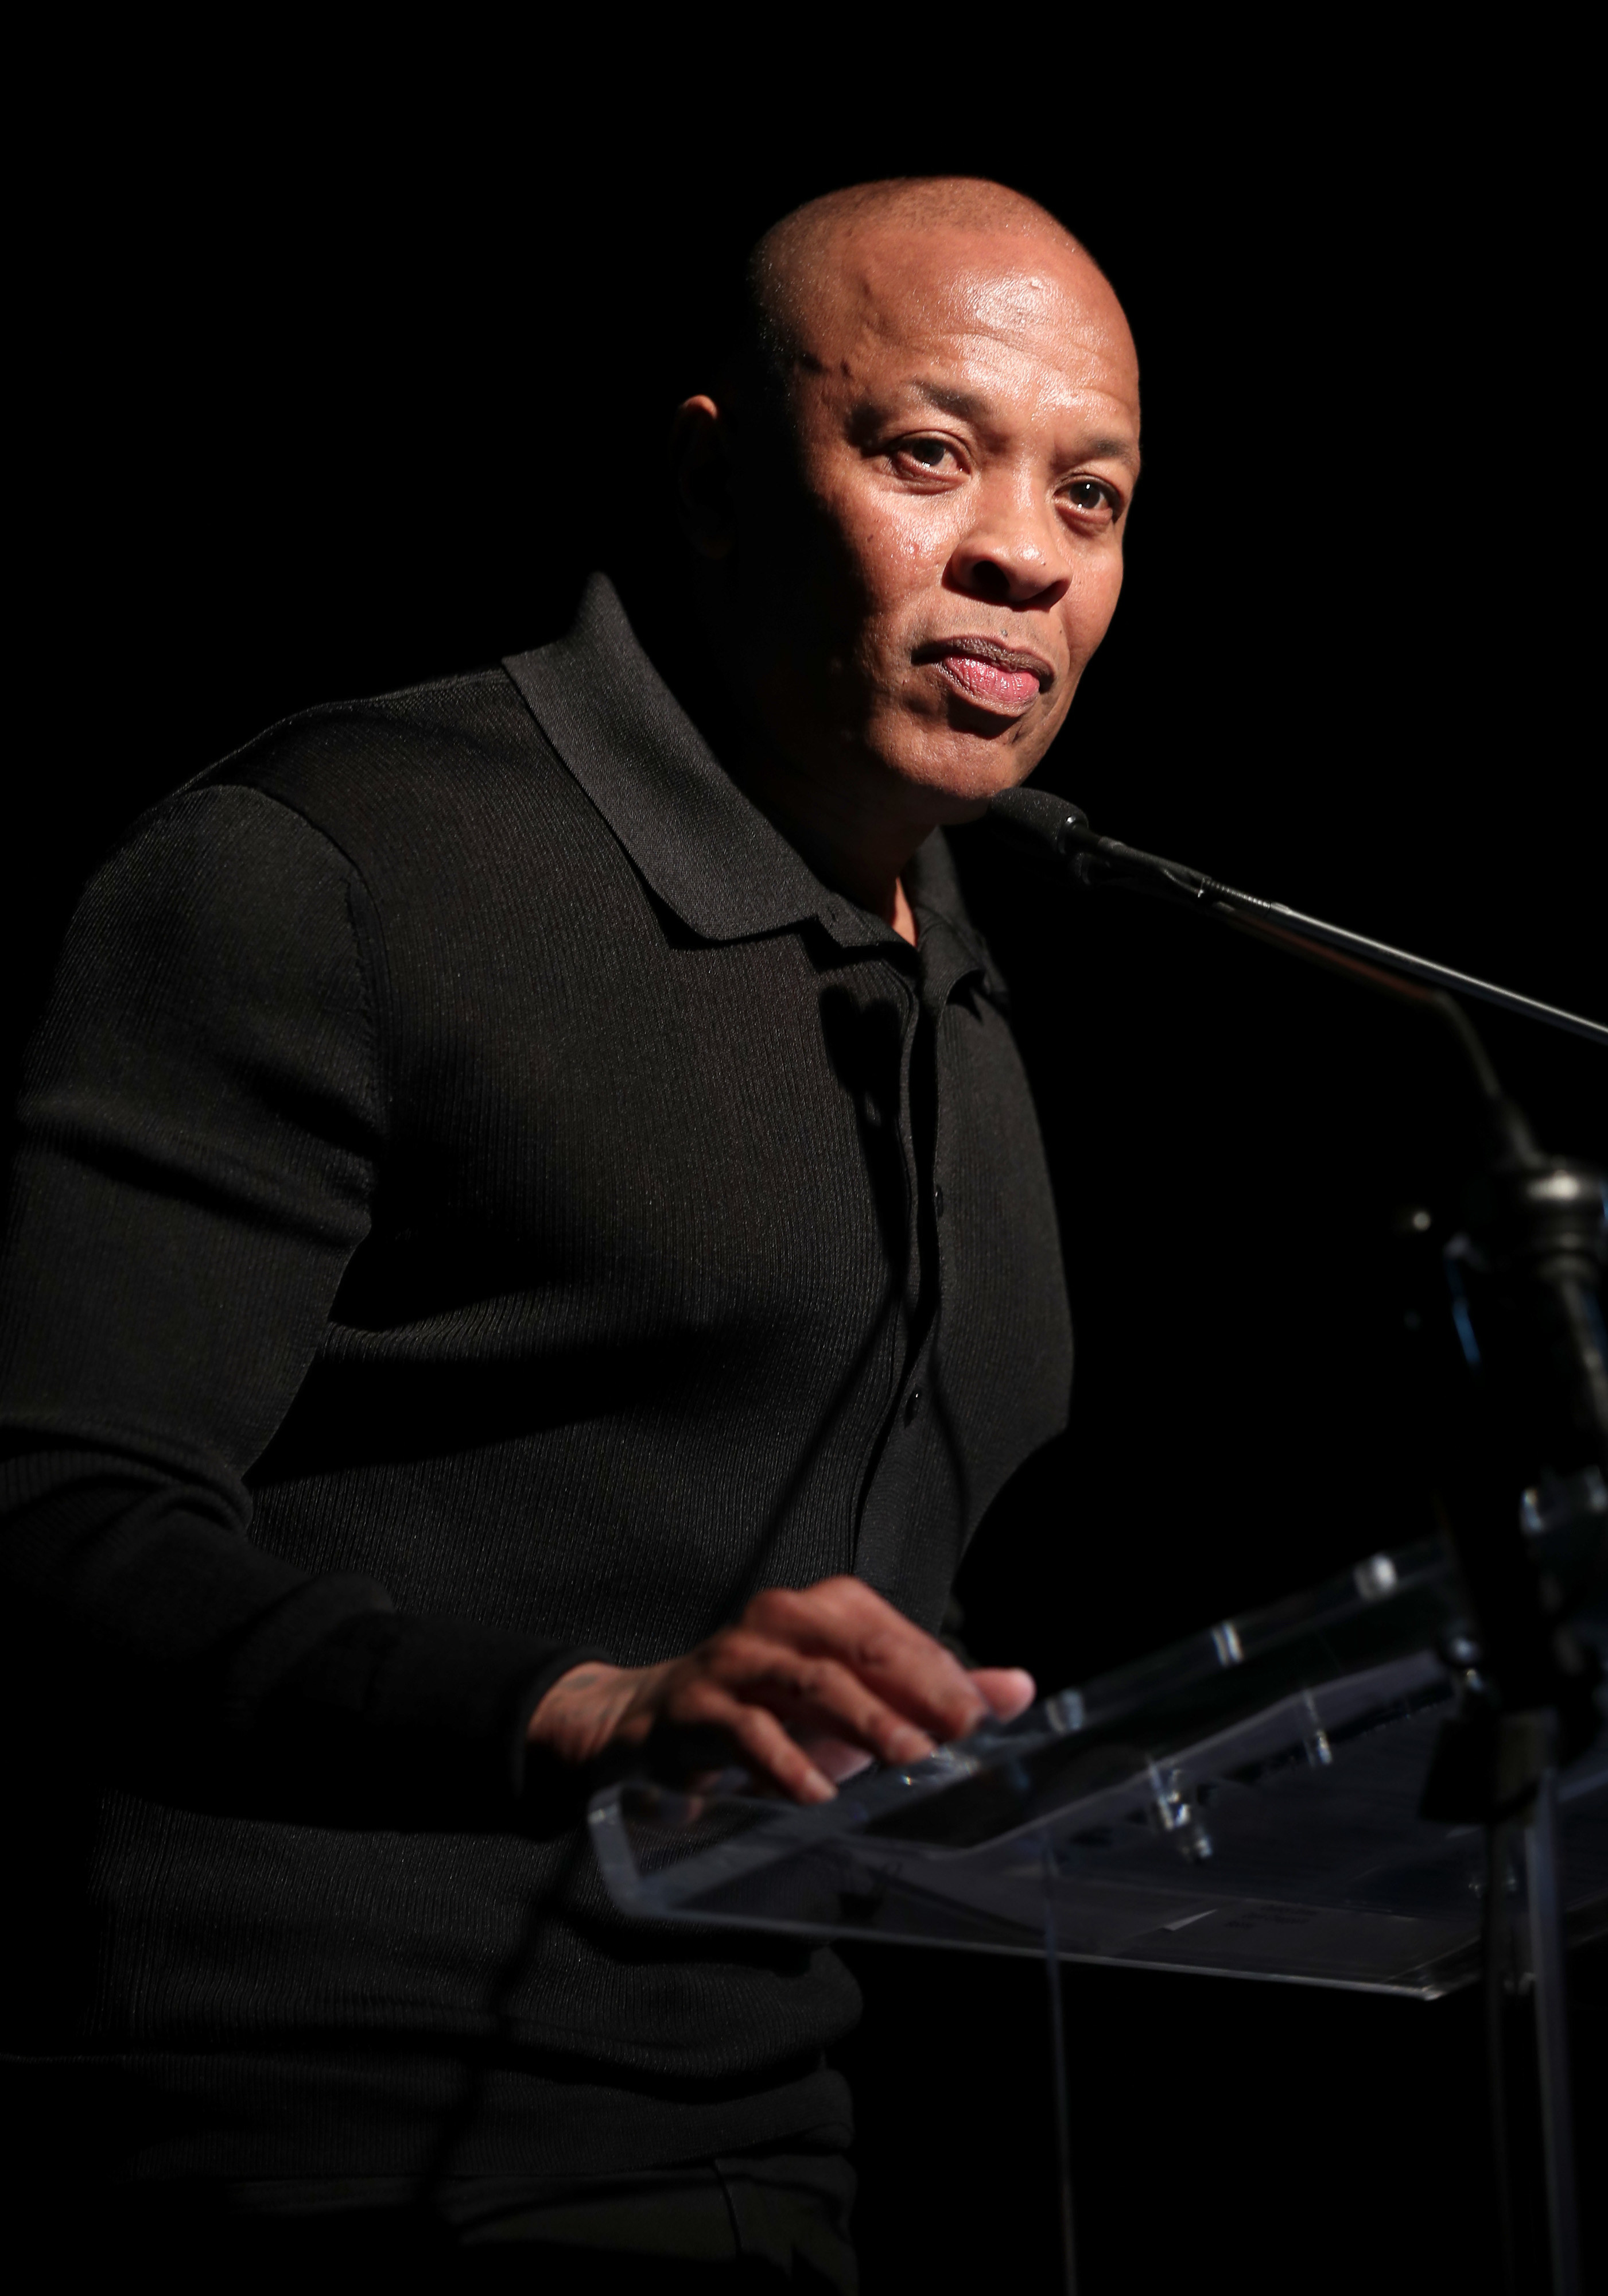 Dr. Dre speaks onstage during the Producers & Engineers Wing 13th annual Grammy week event